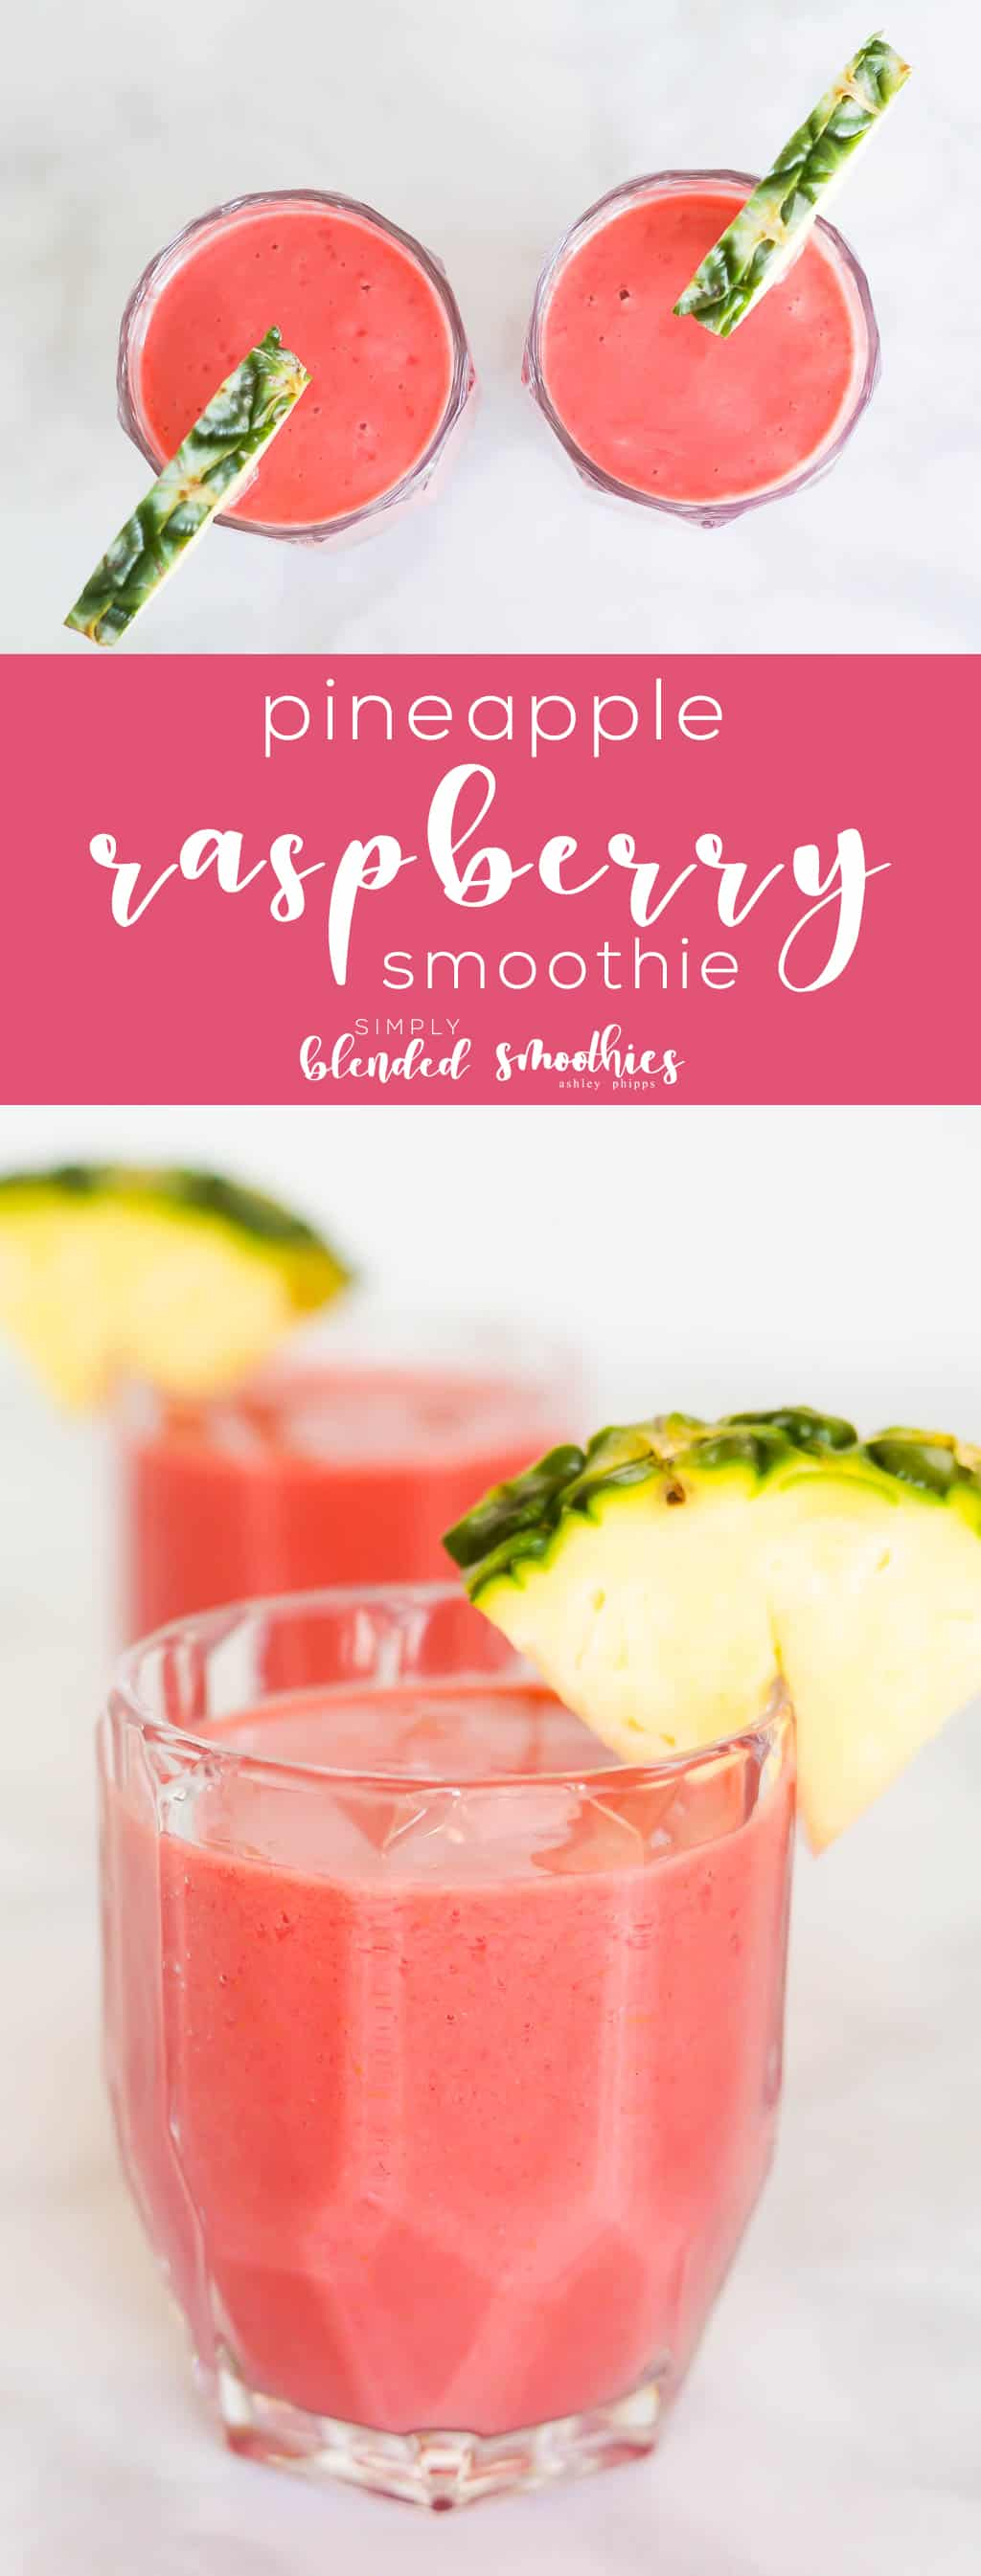 Pineapple Raspberry Smoothie Recipe - this 4 ingredient smoothie is full of flavor is healthy and is a great way to start your day